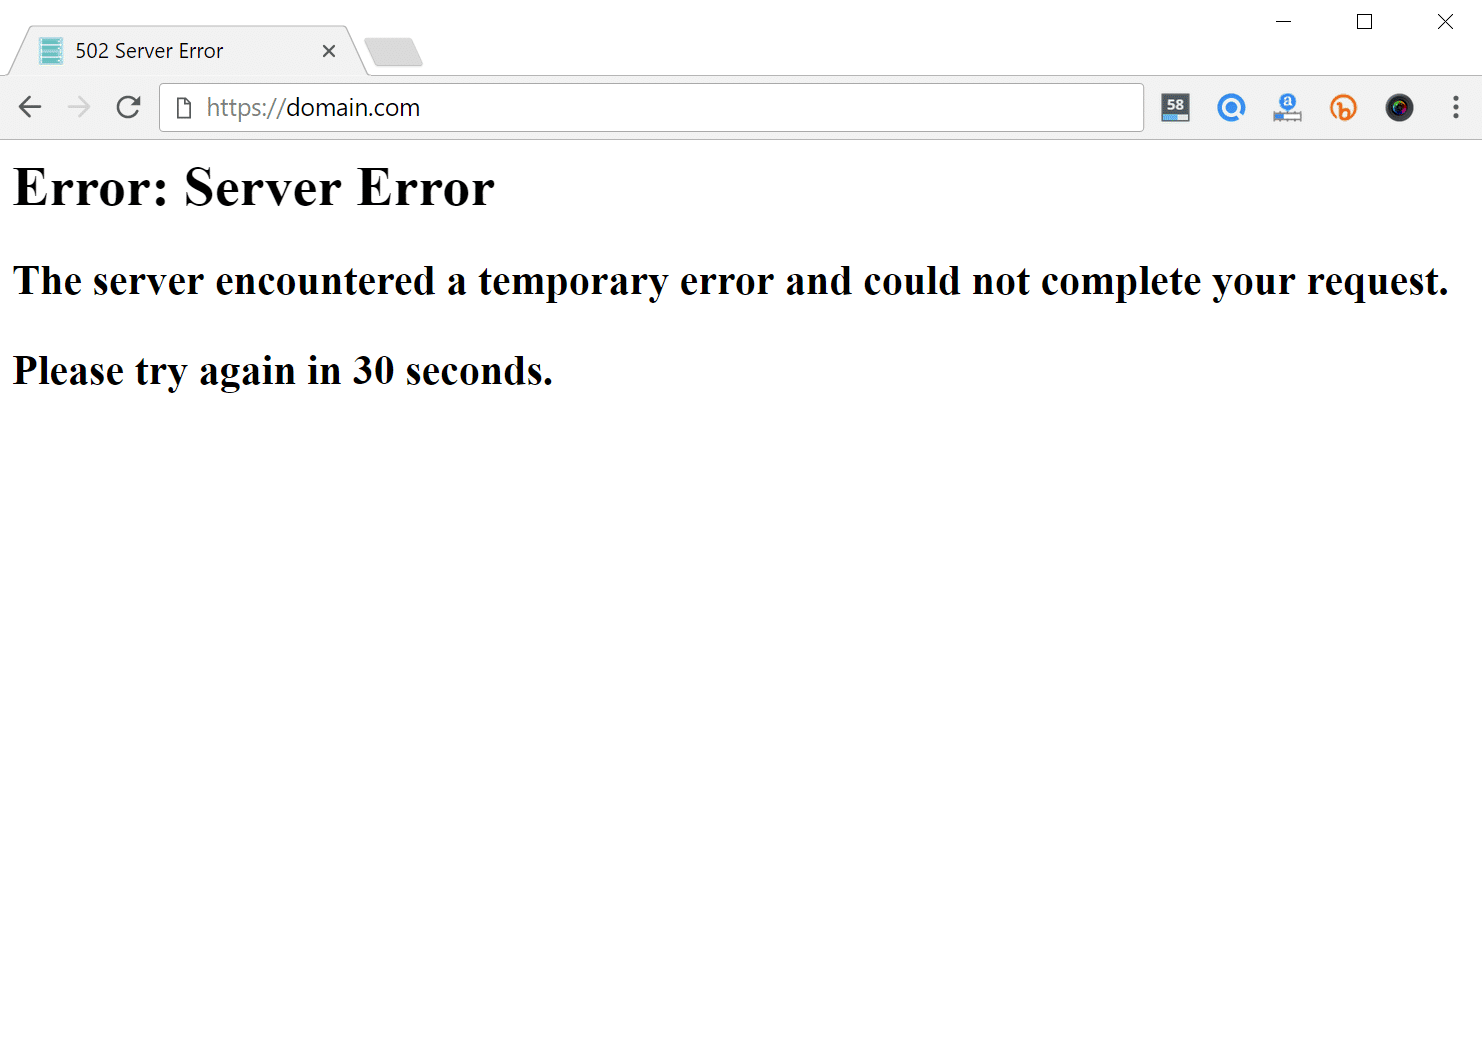 502 server error in browser